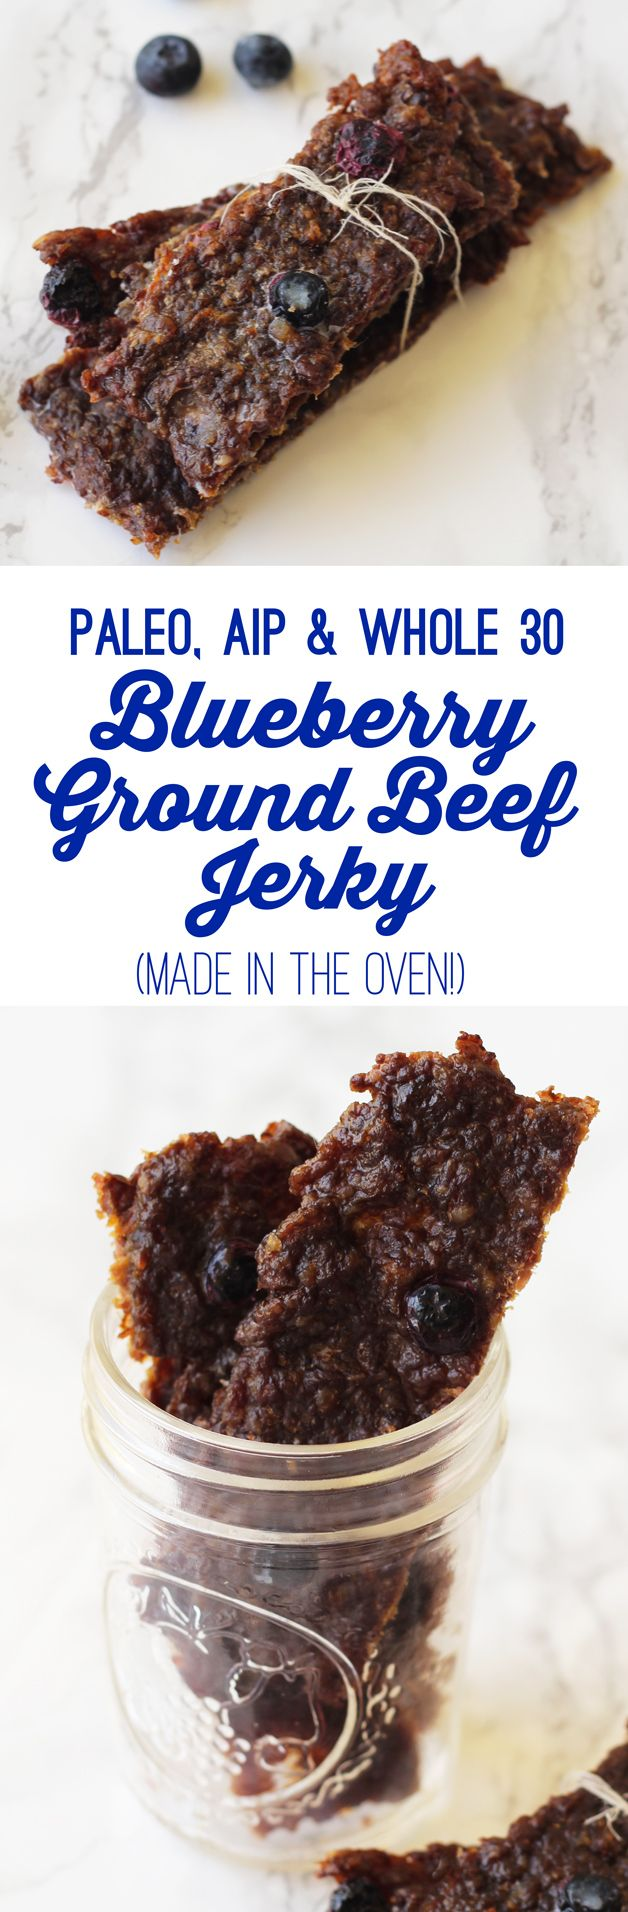 Blueberry Beef Jerky Made In The Oven With Ground Beef Paleo Aip Whole 30 Unbound Wellness Recipe Paleo Ground Beef Beef Jerky Recipes Aip Paleo Recipes